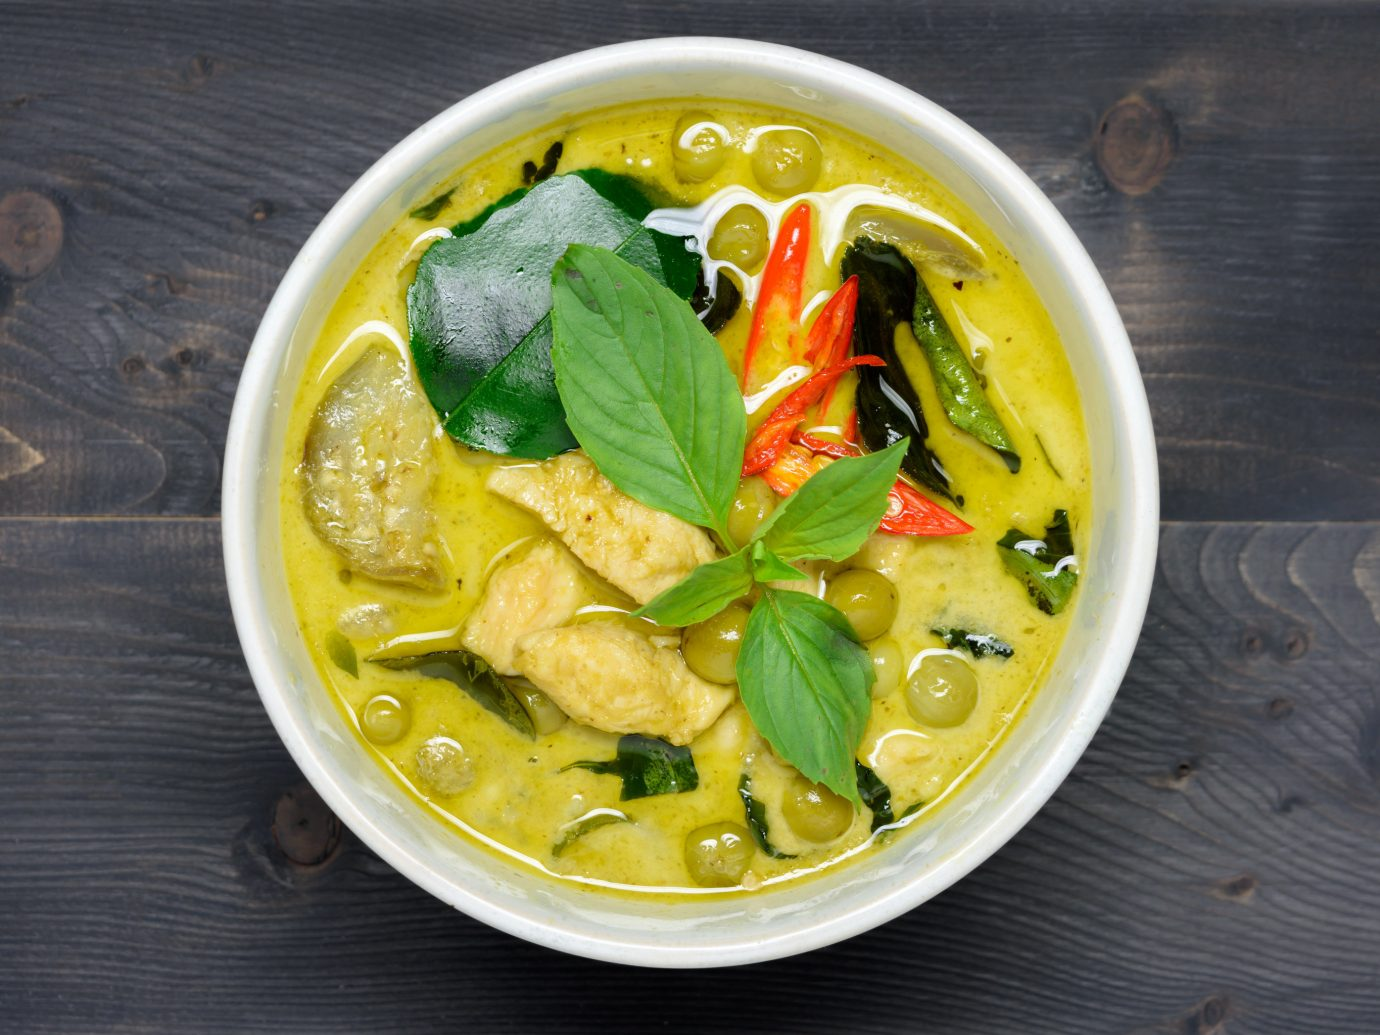 Jetsetter Guides food dish plate curry produce cuisine fish soup vegetable asian food meal vegetarian food flowering plant different